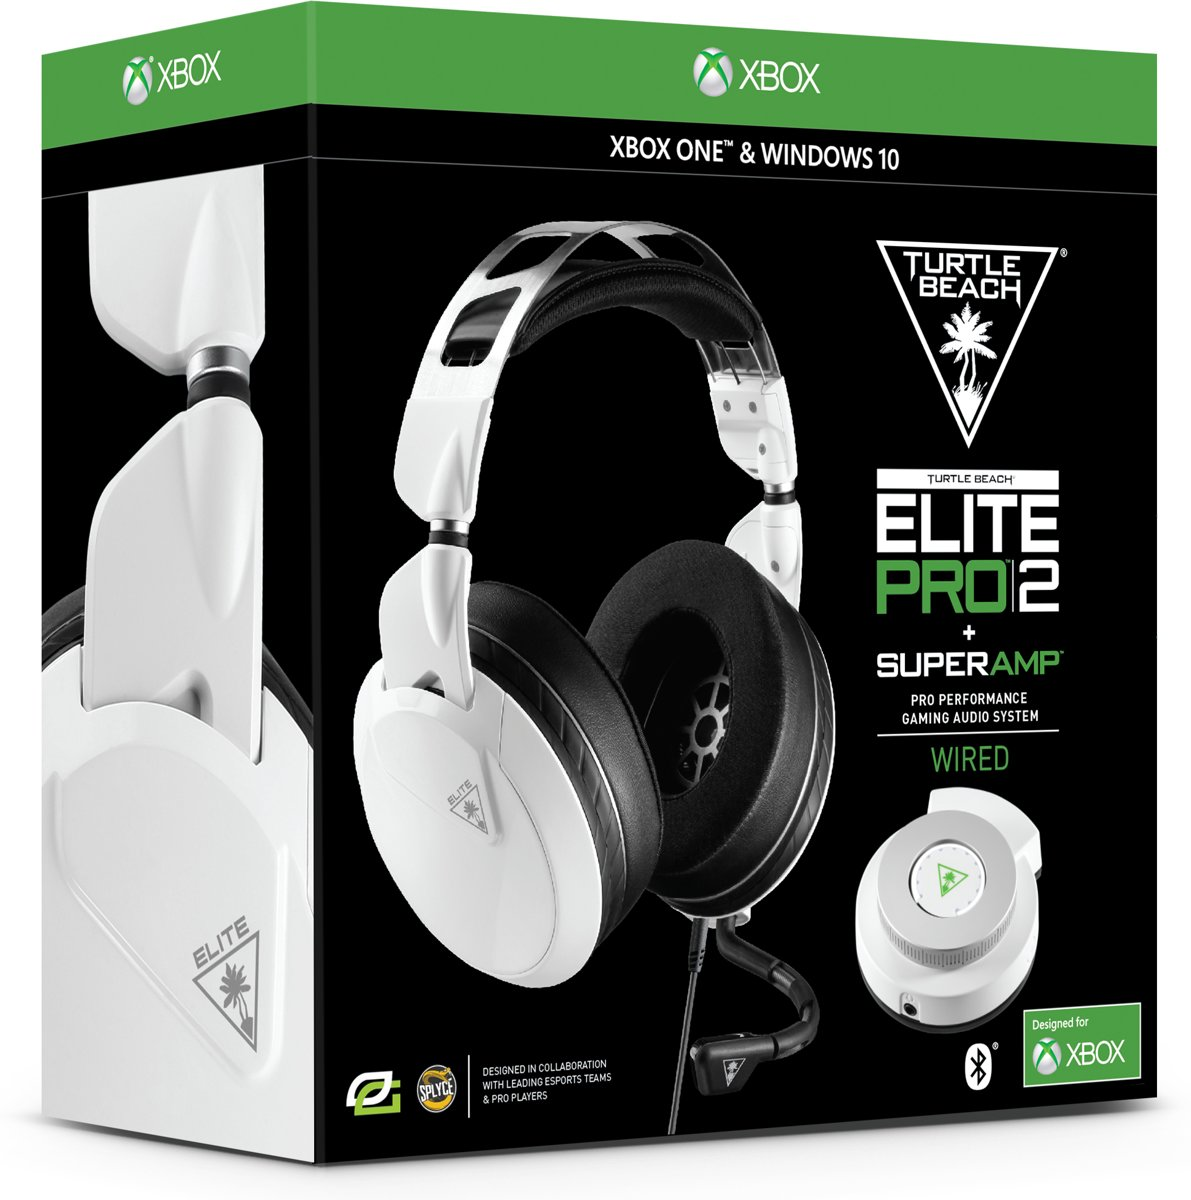 Elite Pro 2 + Super AMP - Xbox One + Windows 10 - Wit